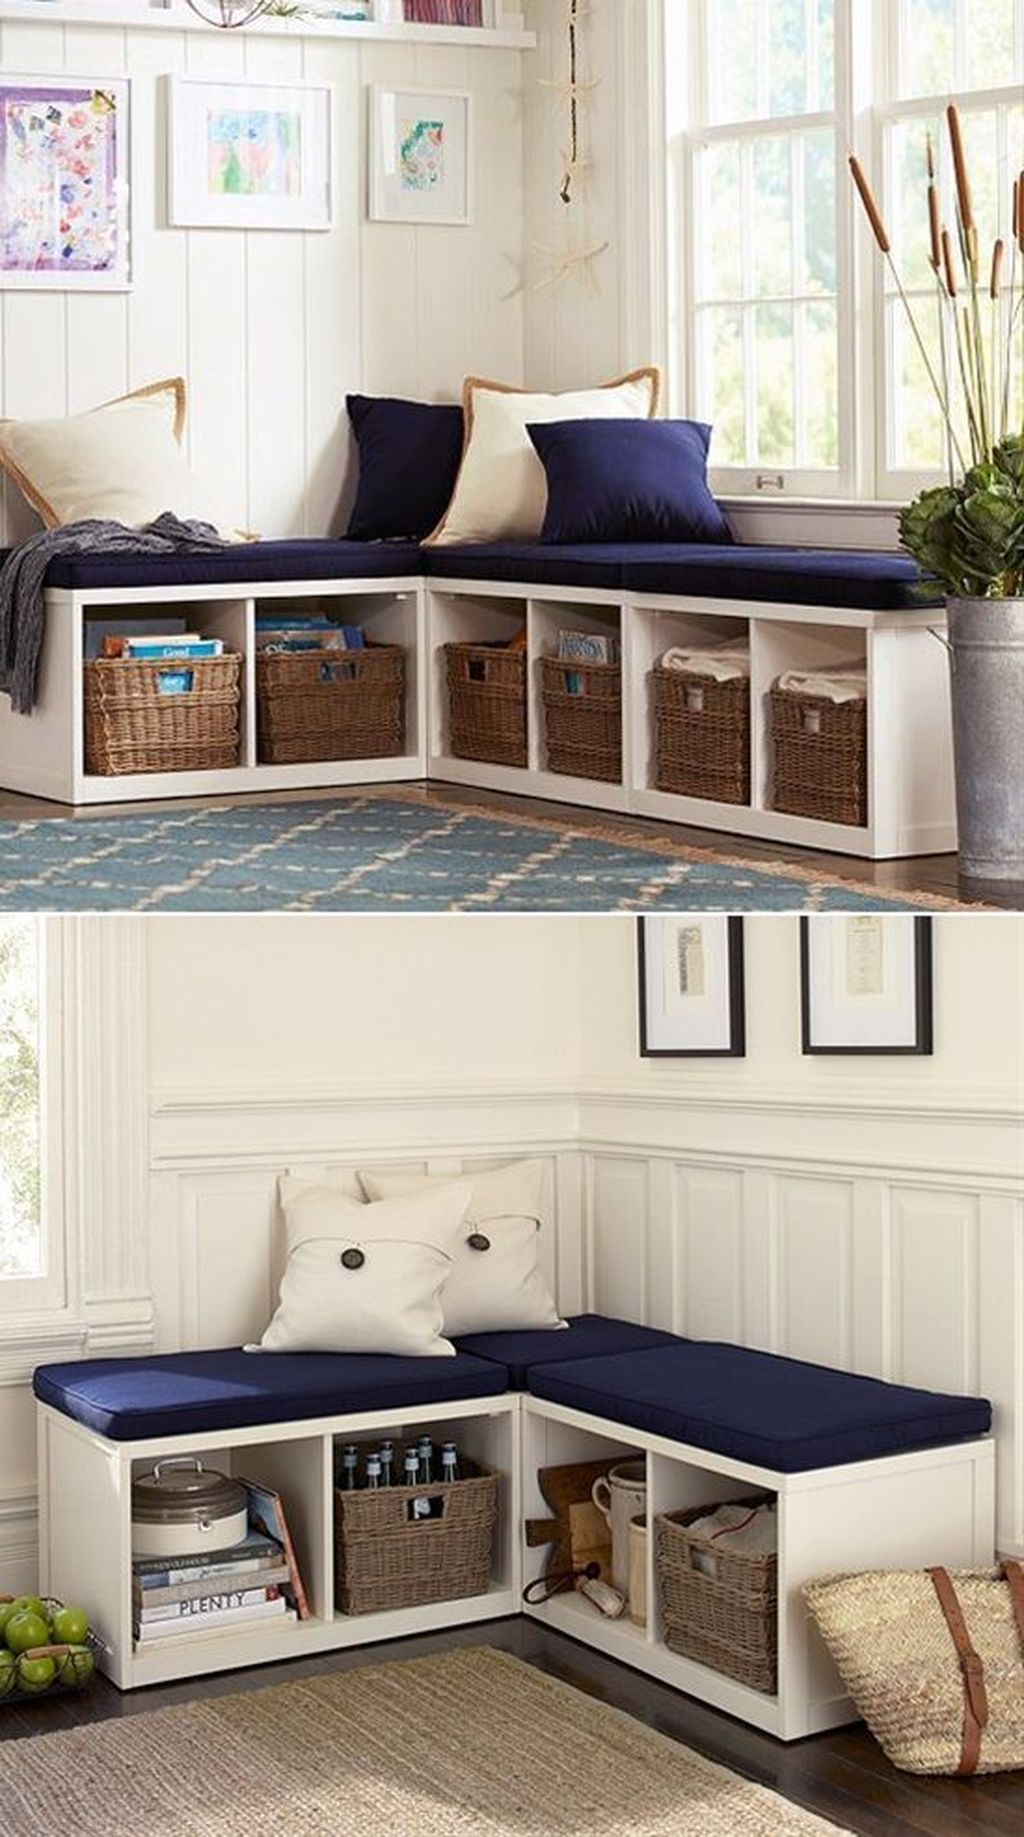 Ikea Small Bedroom Ideas: 44 Top Small Bedroom Ideas On A Budget